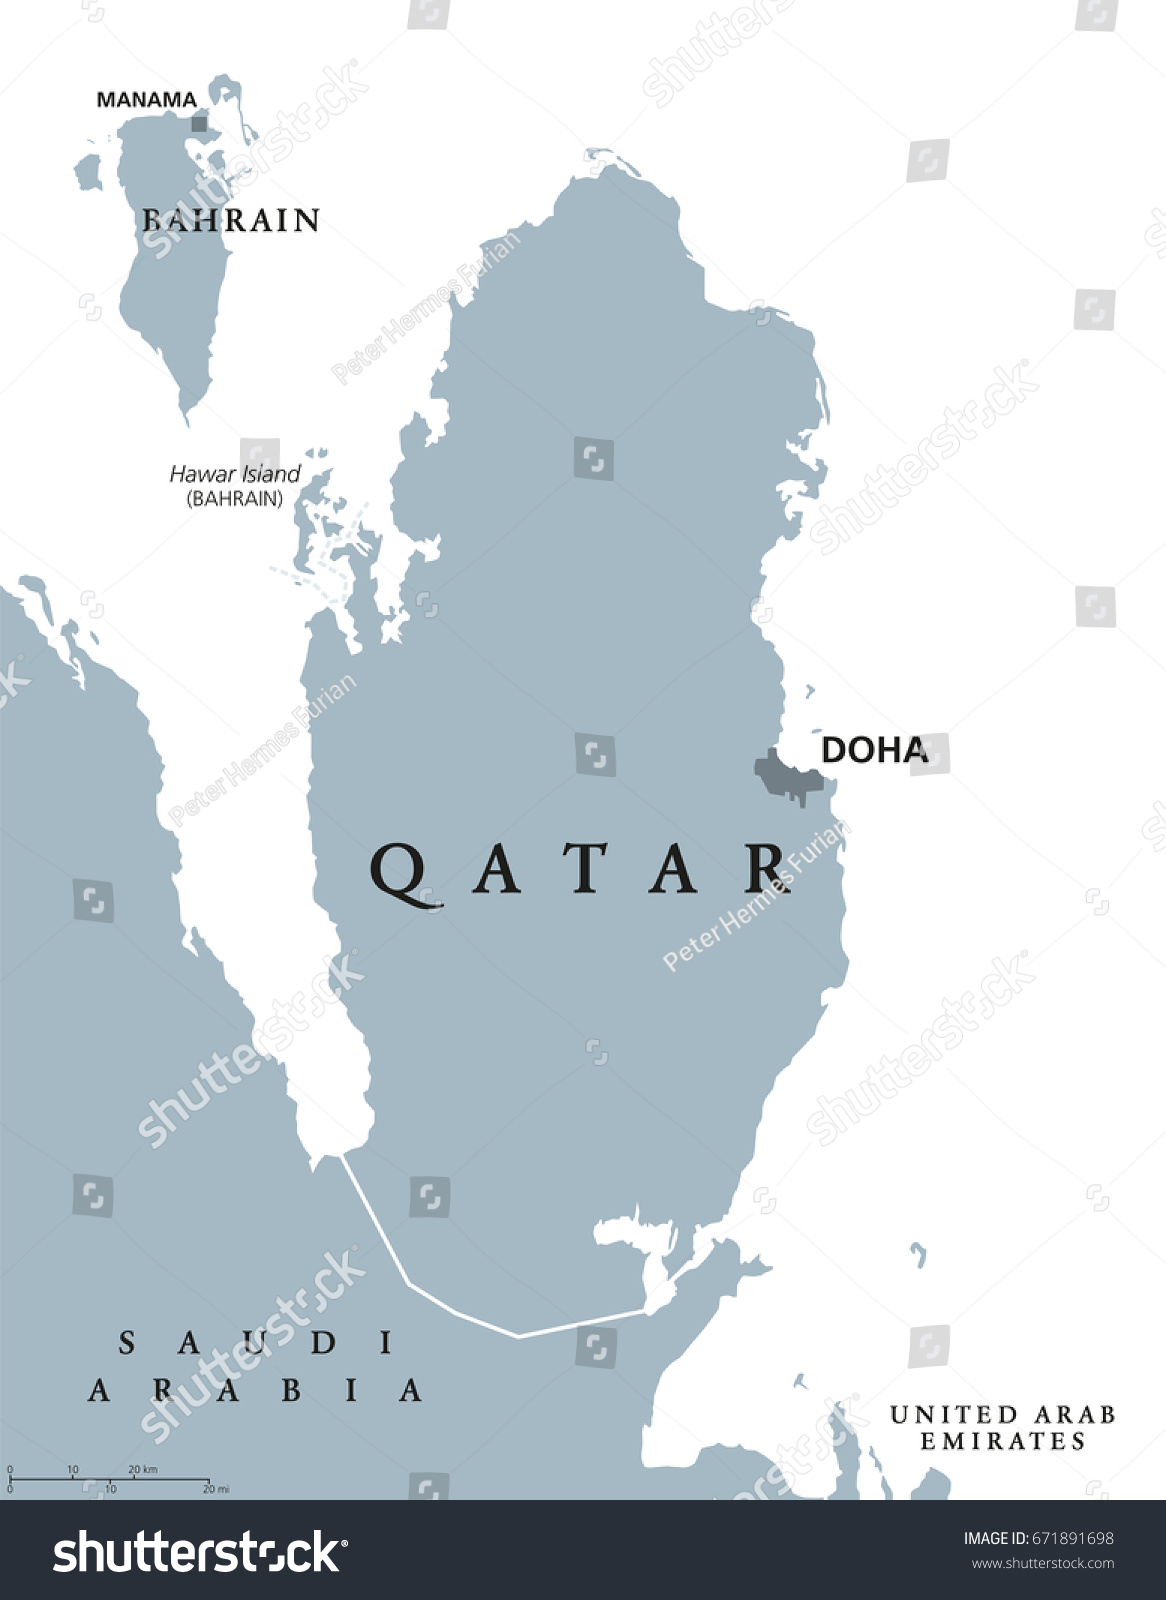 Qatar Political Map Capital Doha State Stock Vector (Royalty ... on bordeaux on world map, manama on world map, riyadh on world map, sanaa on world map, bahrain island on world map, thessaloniki on world map, cincinnati on world map, fuzhou on world map, jeddah on world map, gdansk on world map, dushanbe on world map, miami on world map, kano on world map, qatar on world map, laccadive sea on world map, pristina on world map, bhutan on world map, makkah on world map, belize city on world map, yerevan on world map,